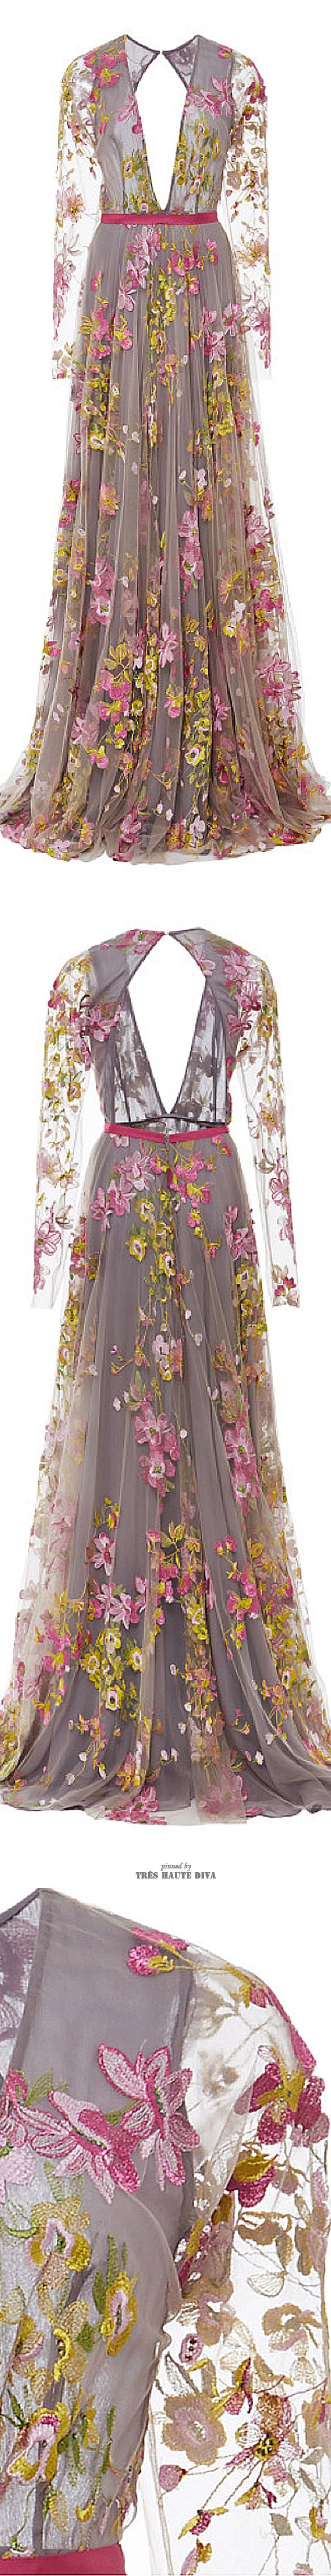 Naeem Khan Floral Embroidered Long Sleeve Gown. SS 2015 - really pretty - too bad its so low cut